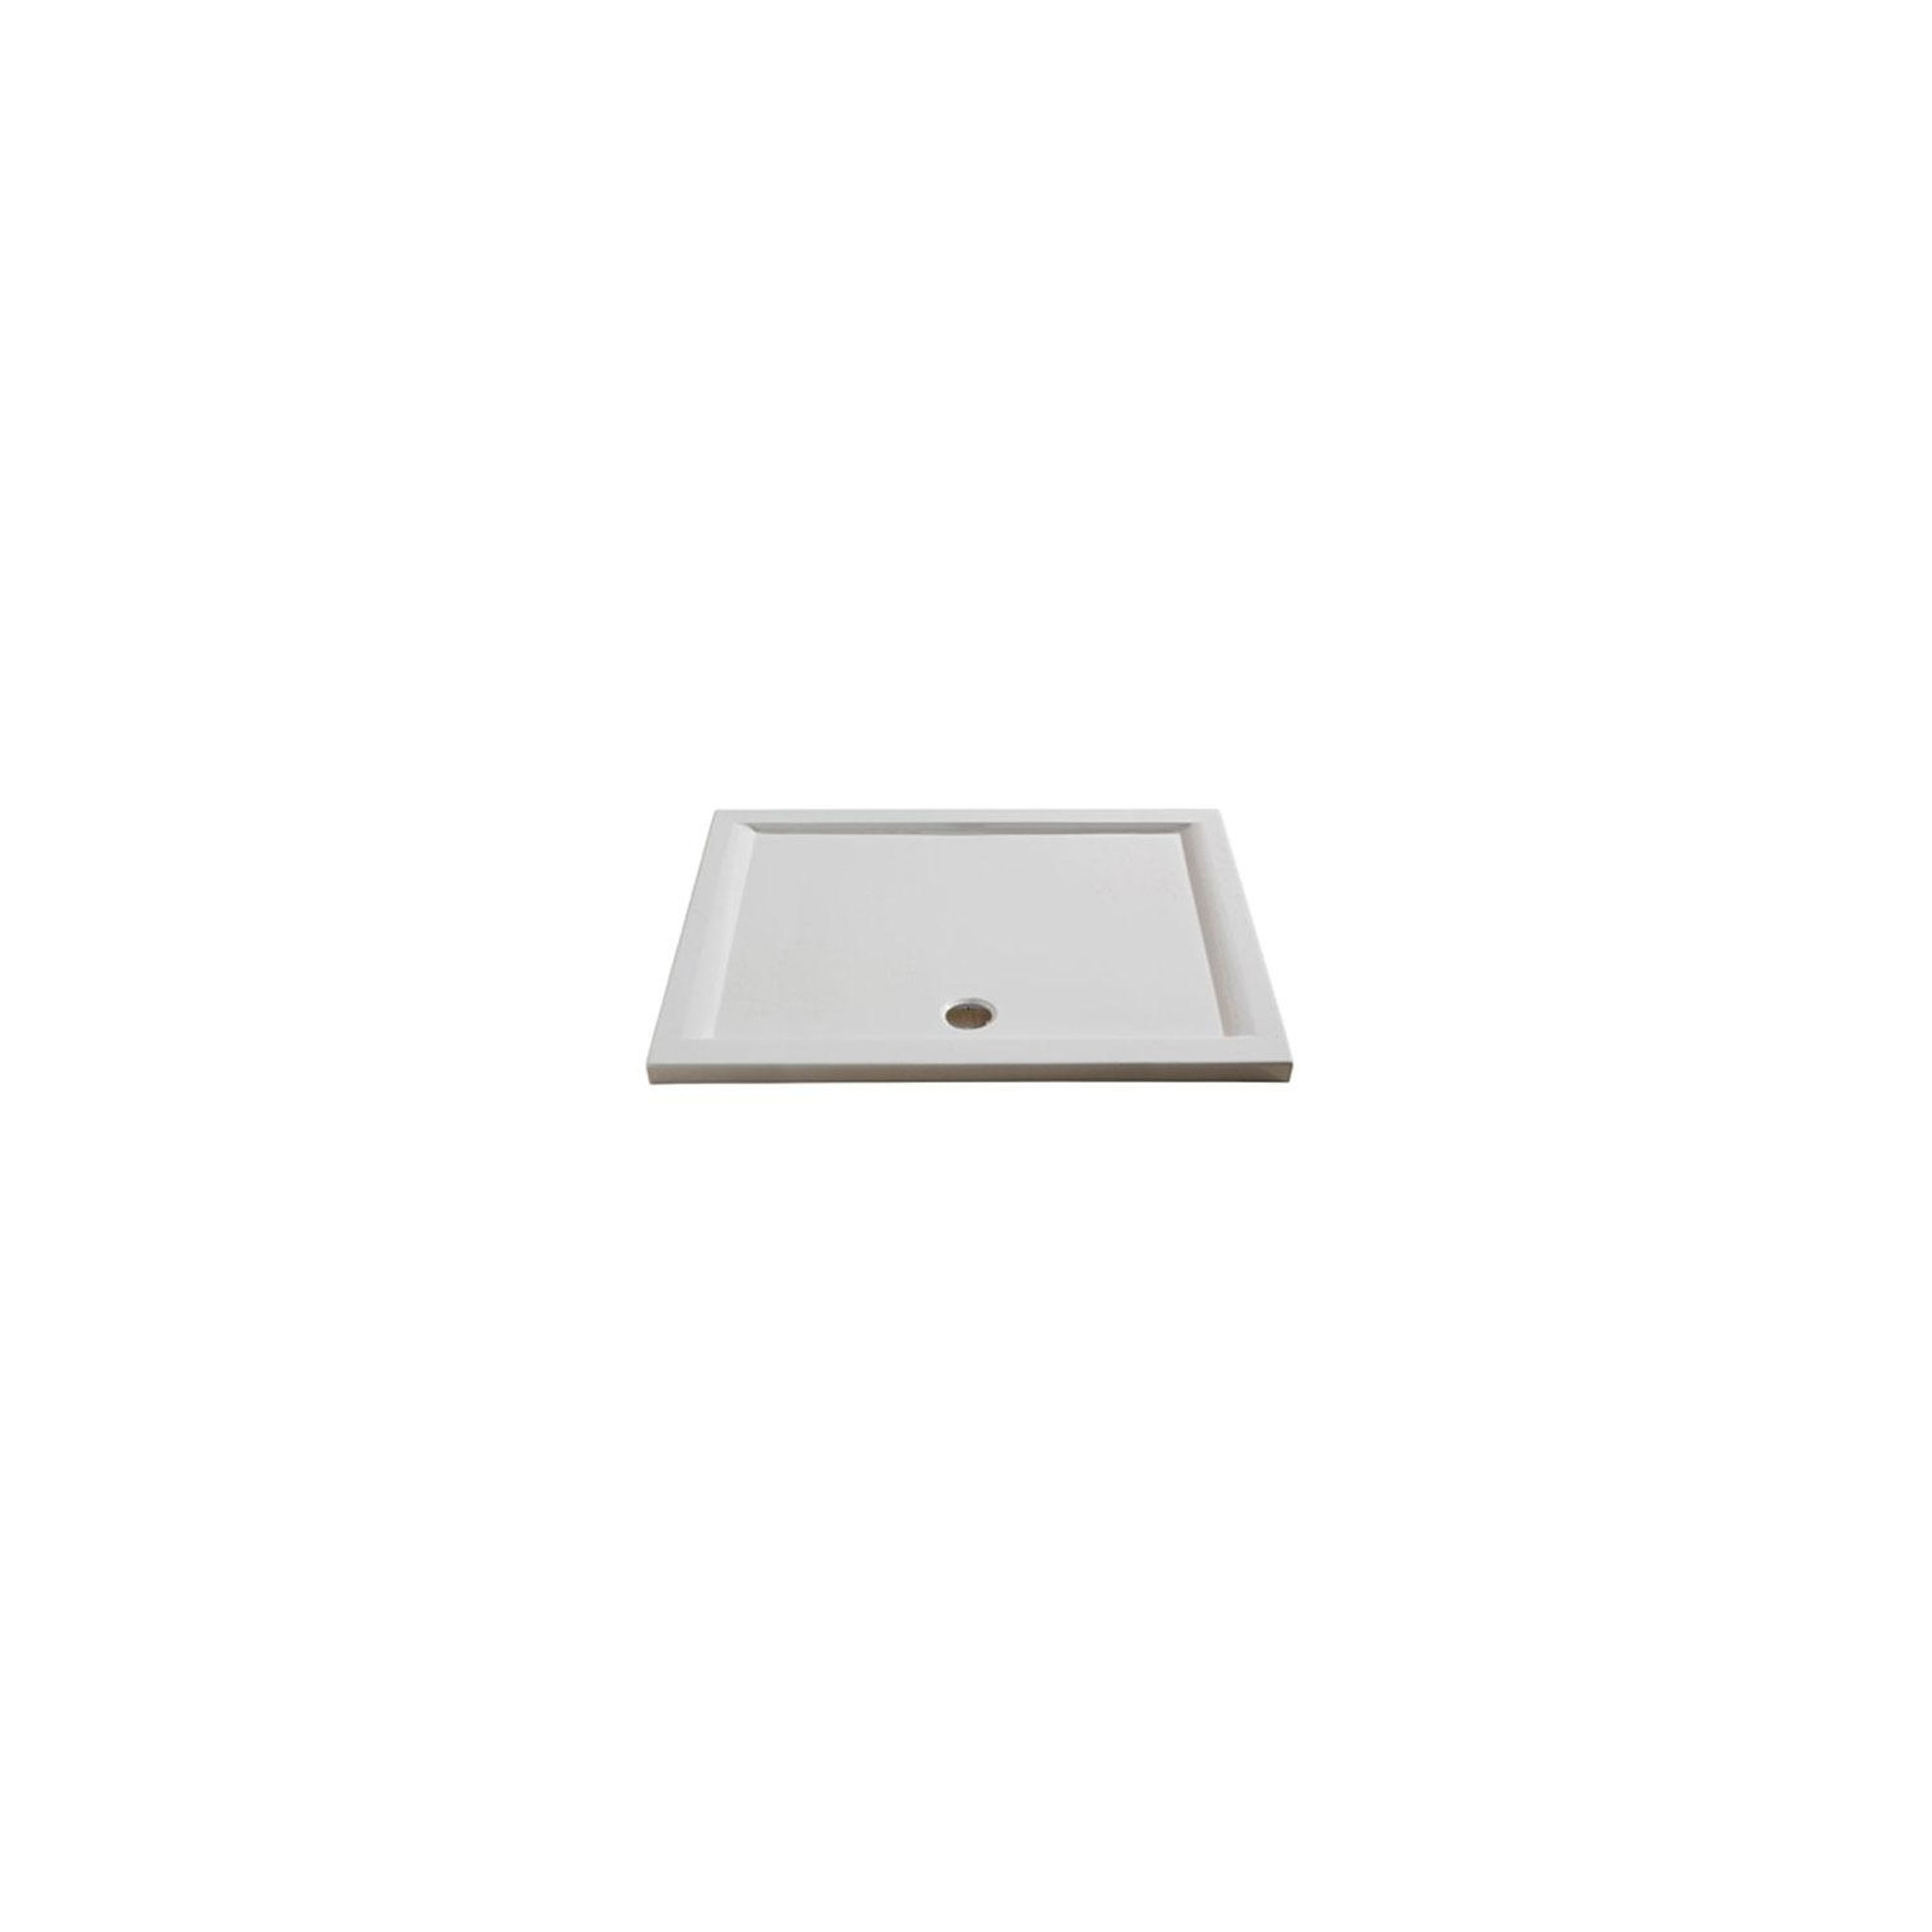 Merlyn Merlyte Low Profile Rectangular Shower Tray, 1500mm x 900mm at Tesco Direct